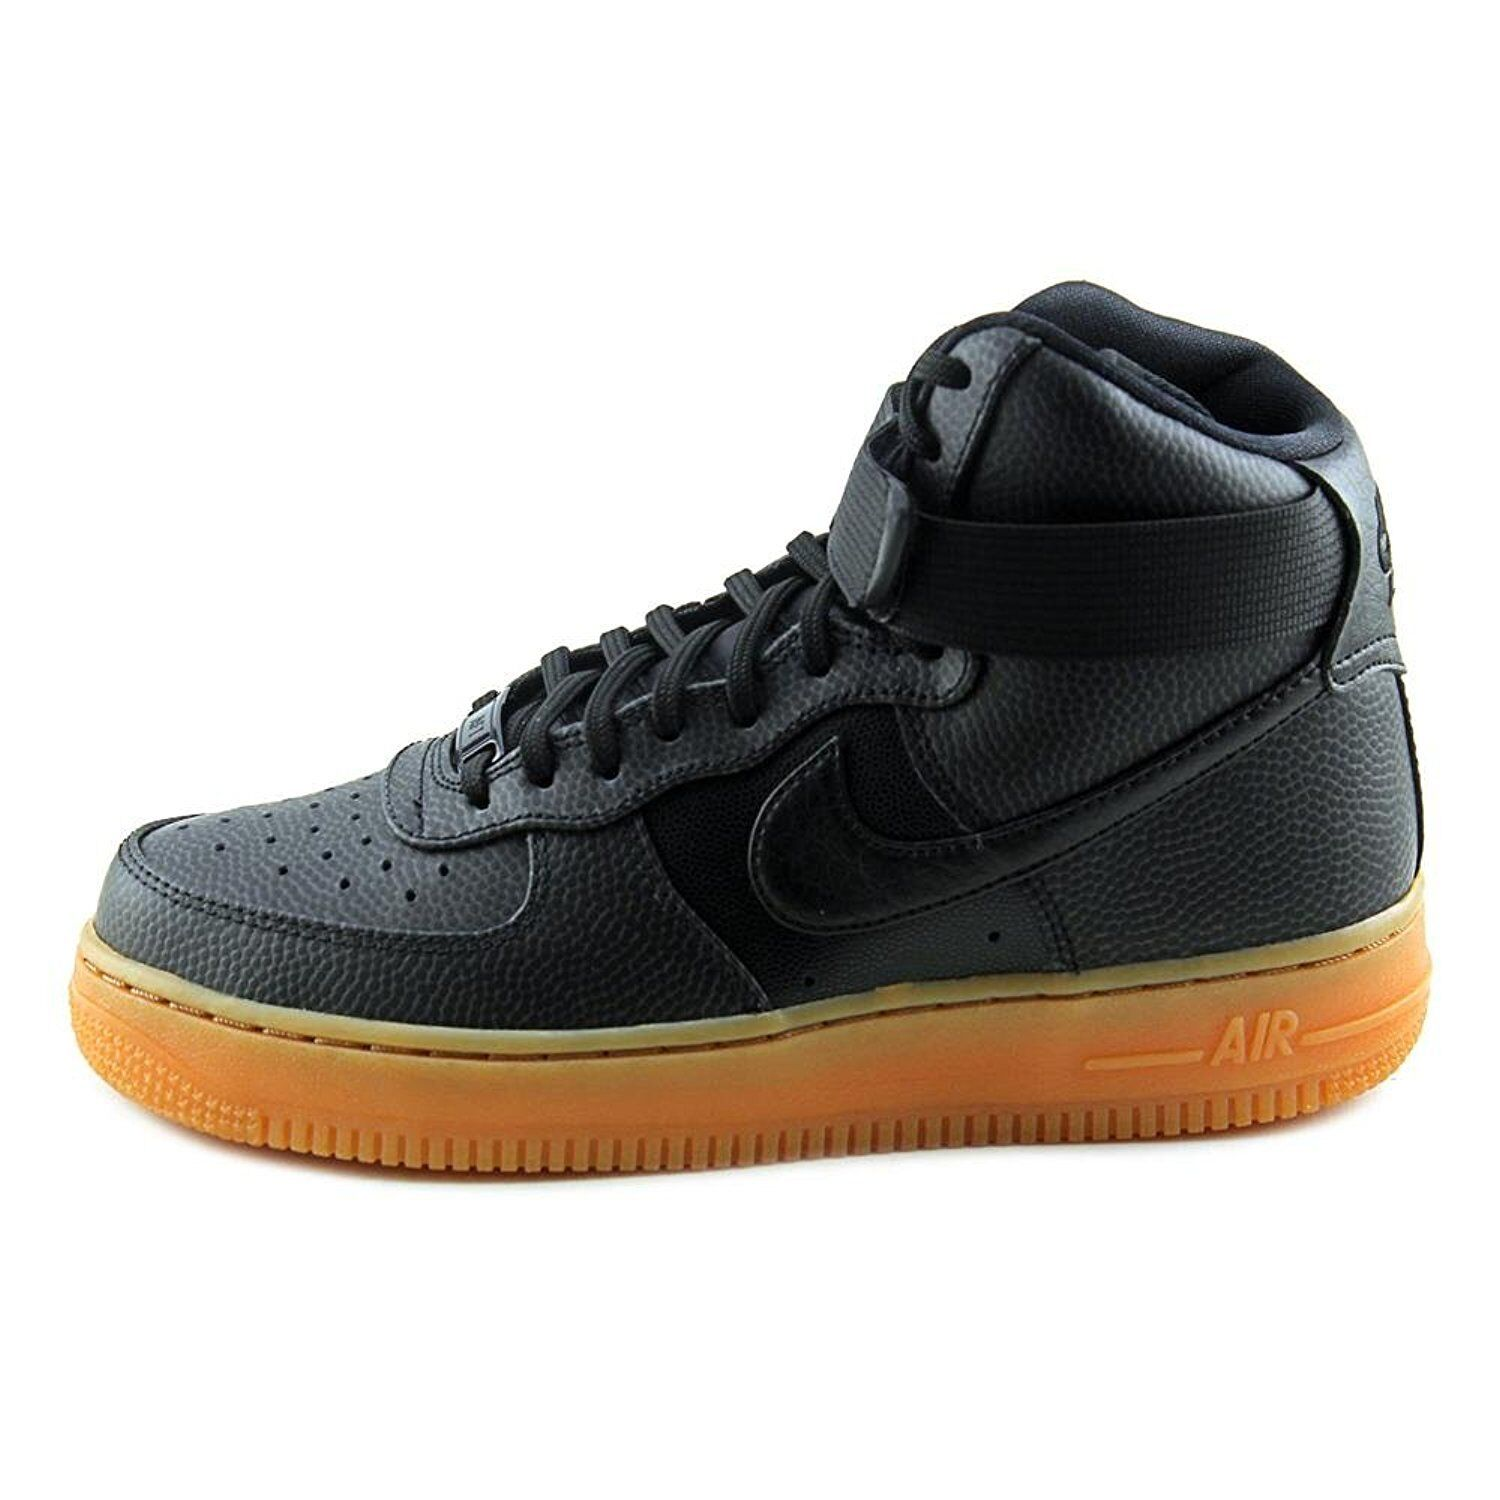 Nike Air Force 1 Hi Women Black Basketball Basketball Basketball shoes - Size 12 (860544-002) BLACK 5d70a8